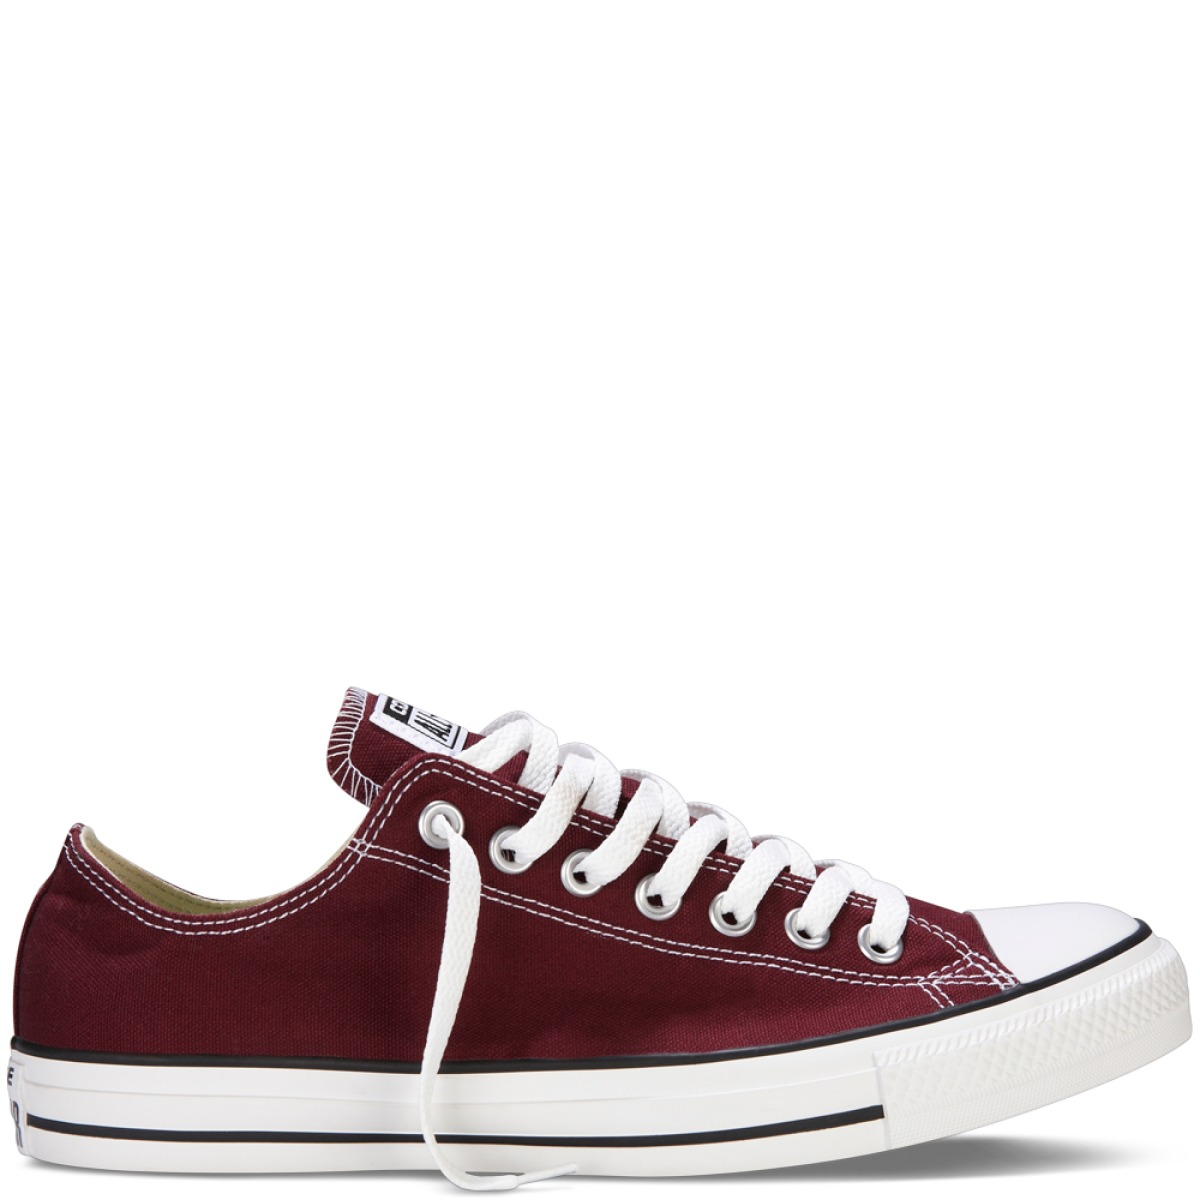 converse all star chica